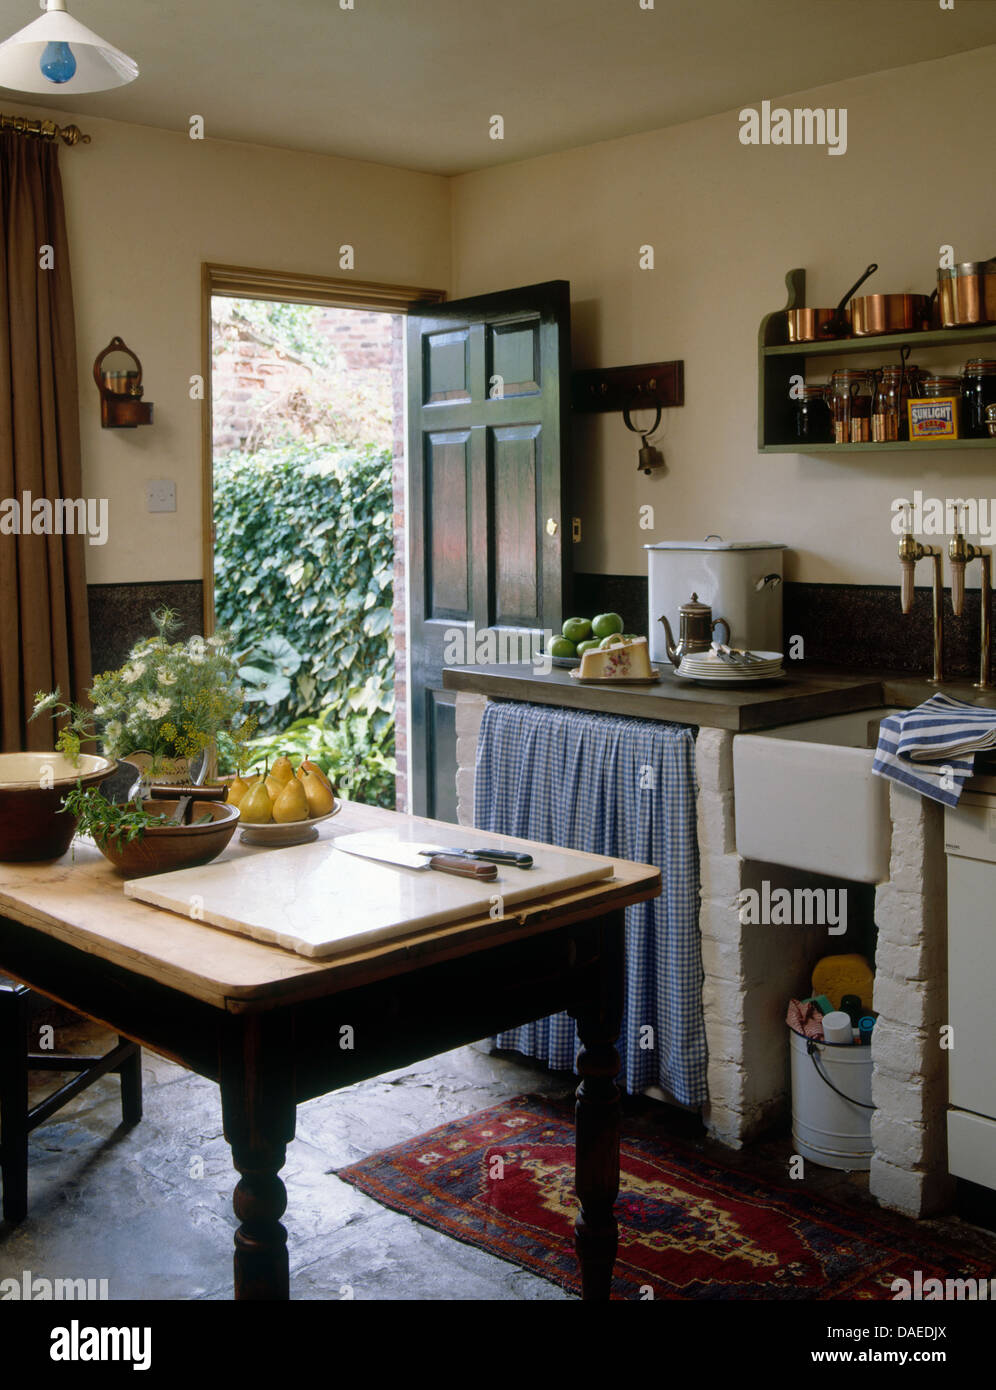 Wooden table in center rustic country cottage kitchen with curtains on unit  beside Belfast sink